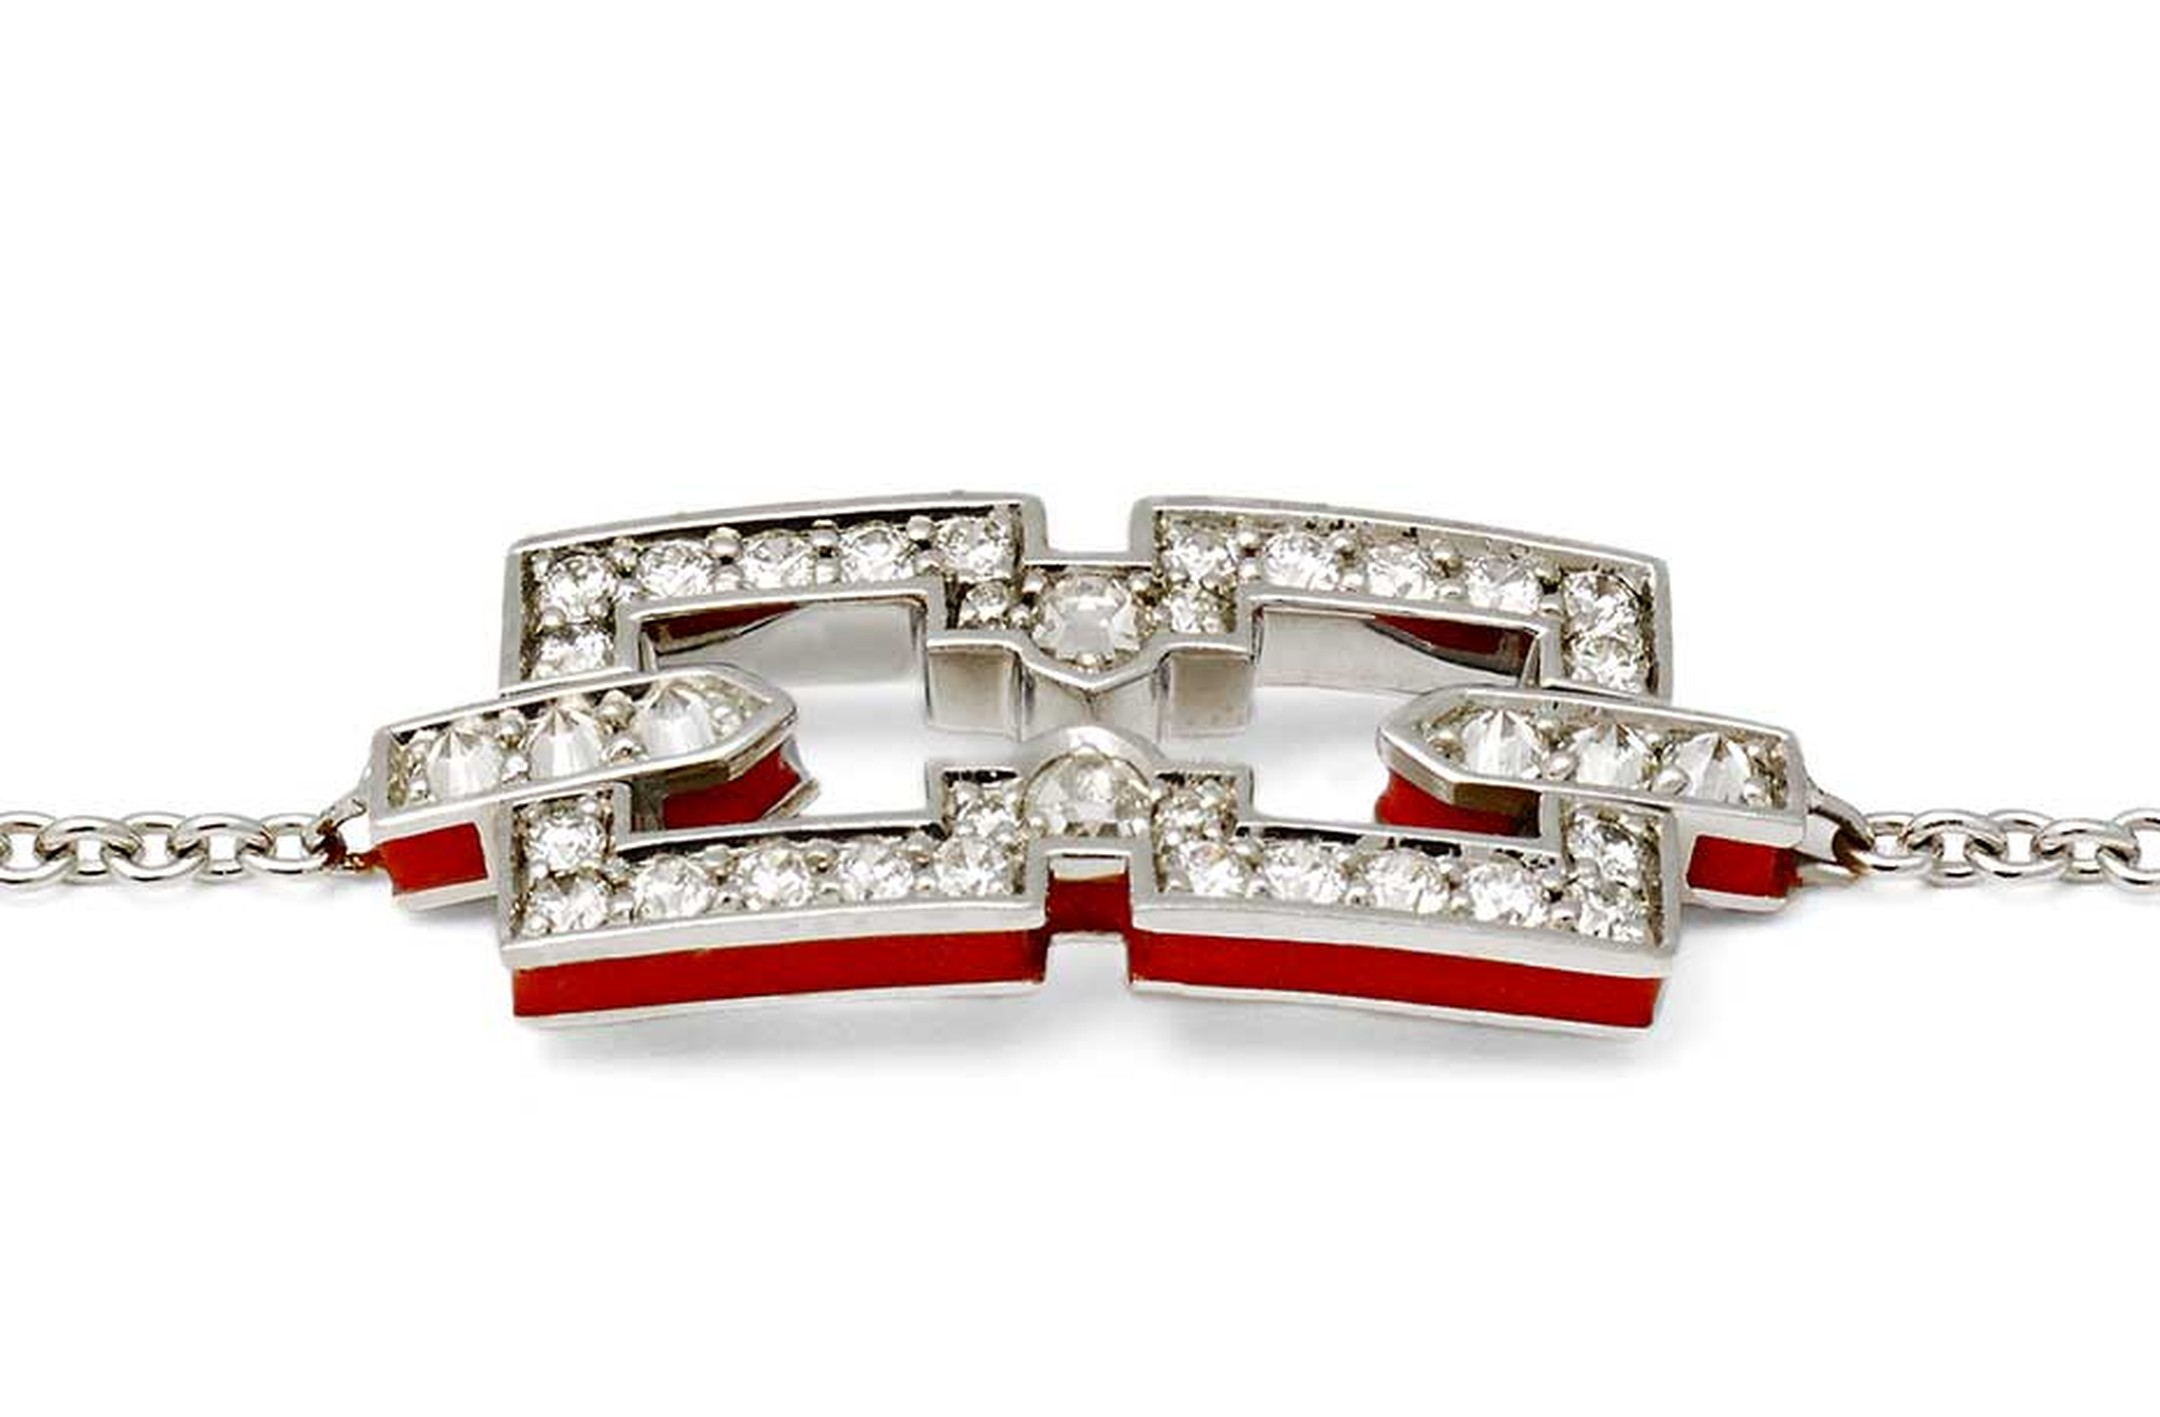 Raphaele Canot Skinny Deco collection white gold Icon bracelet featuring pavé white diamonds and red coral enamel.